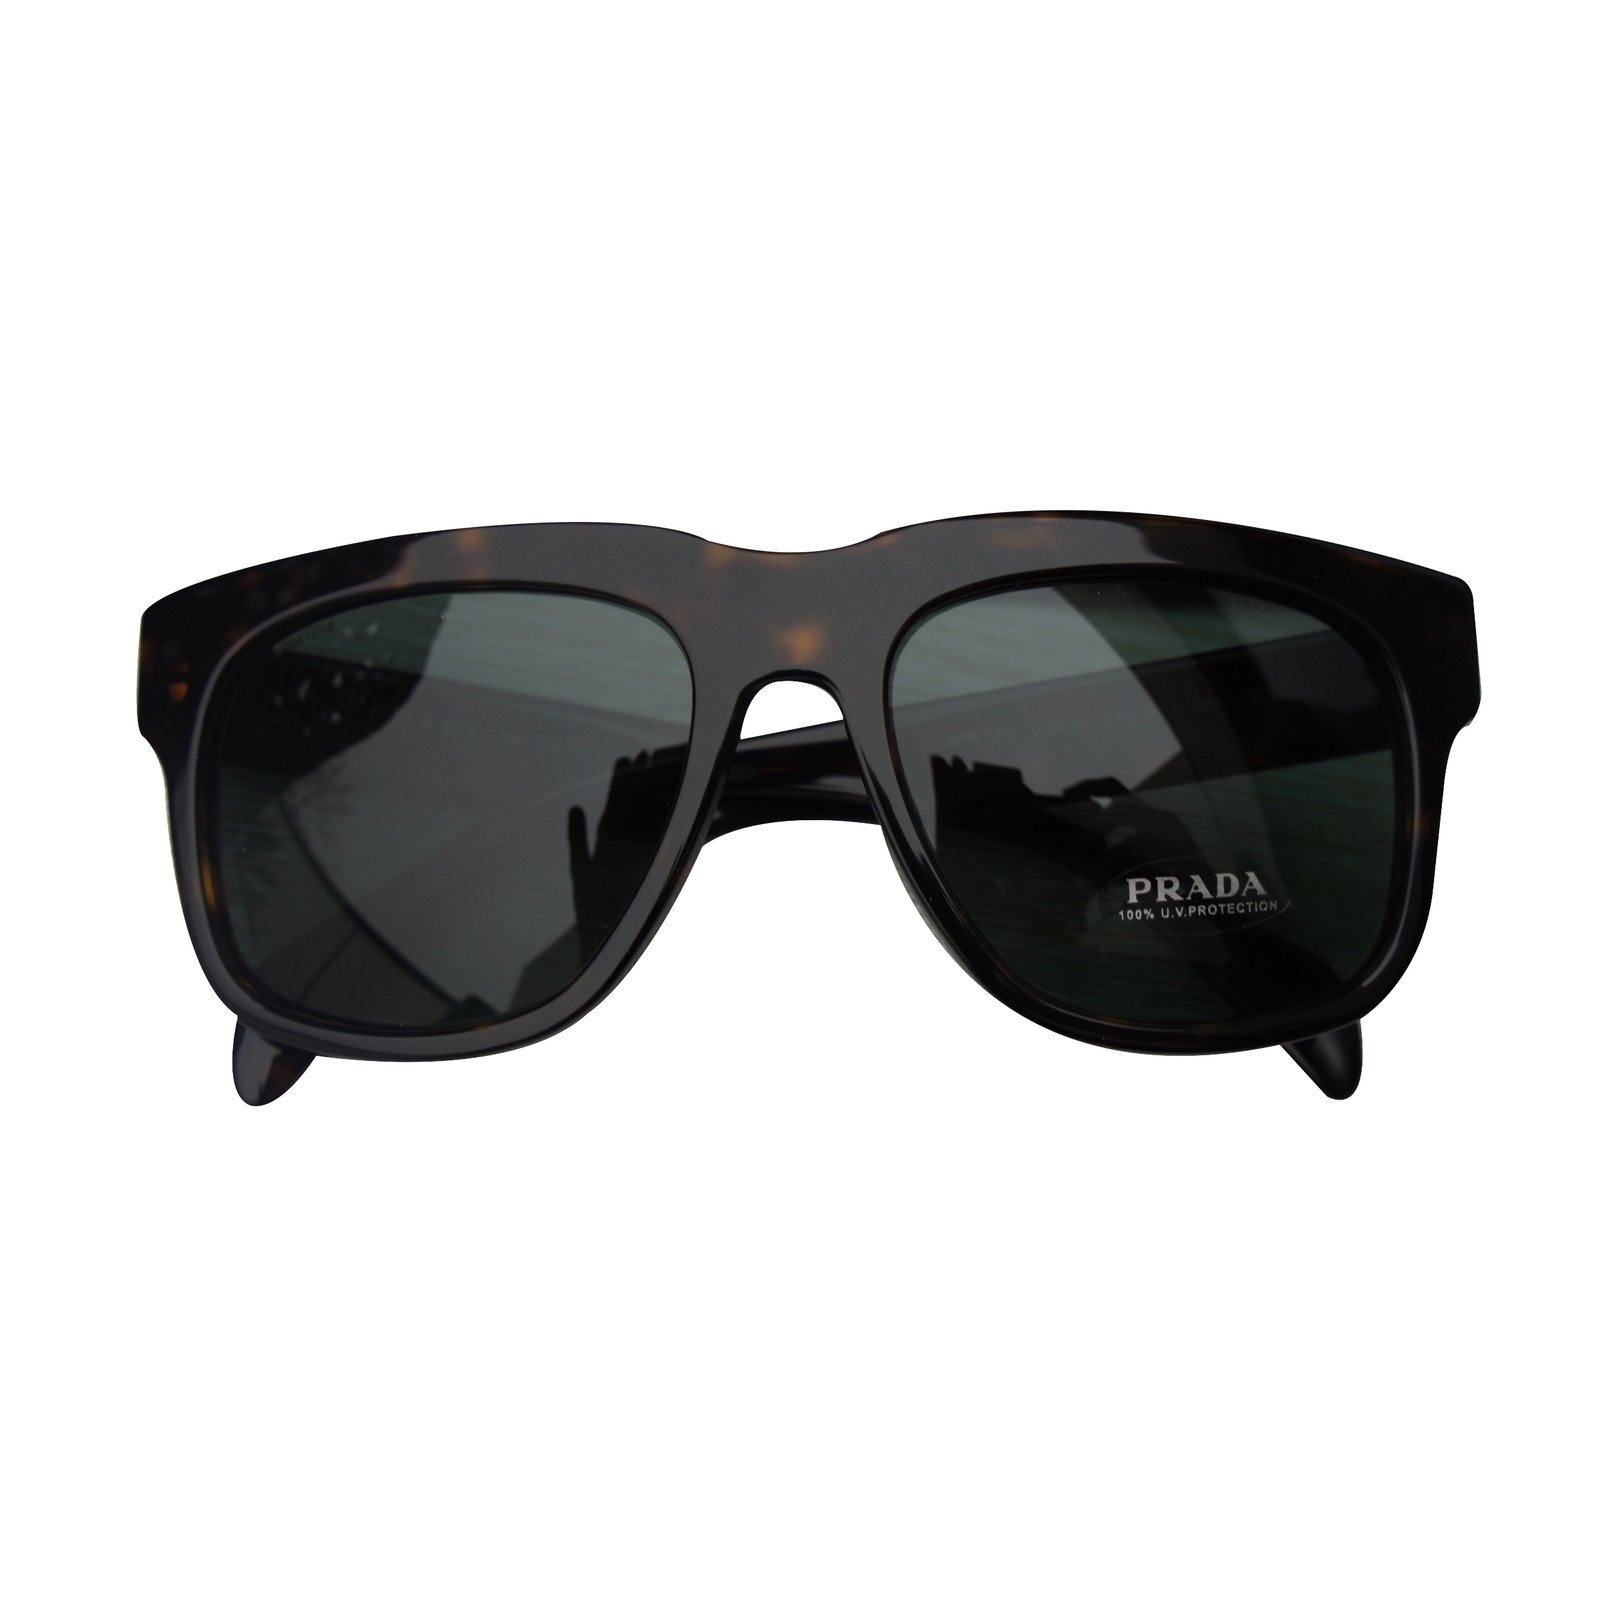 62a8e8cdeee ... discount prada sunglasses sunglasses plastic brown ref.31851 61428 bfb00